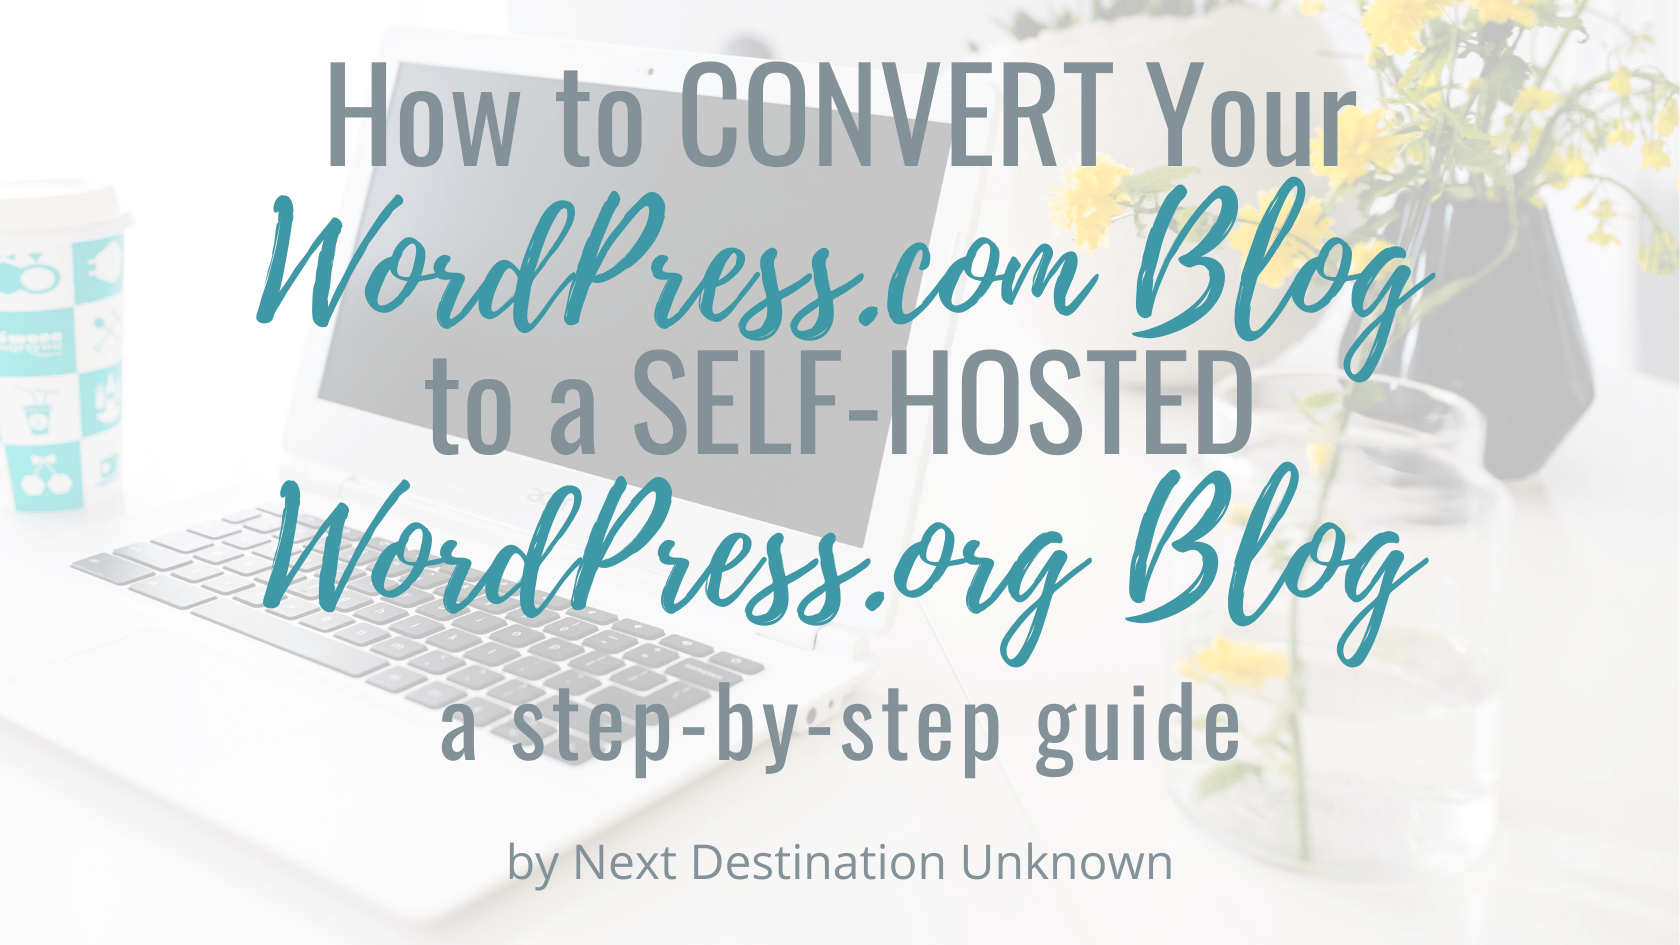 How to Convert your WordPress.com Blog to a Self-Hosted WordPress.org Blog